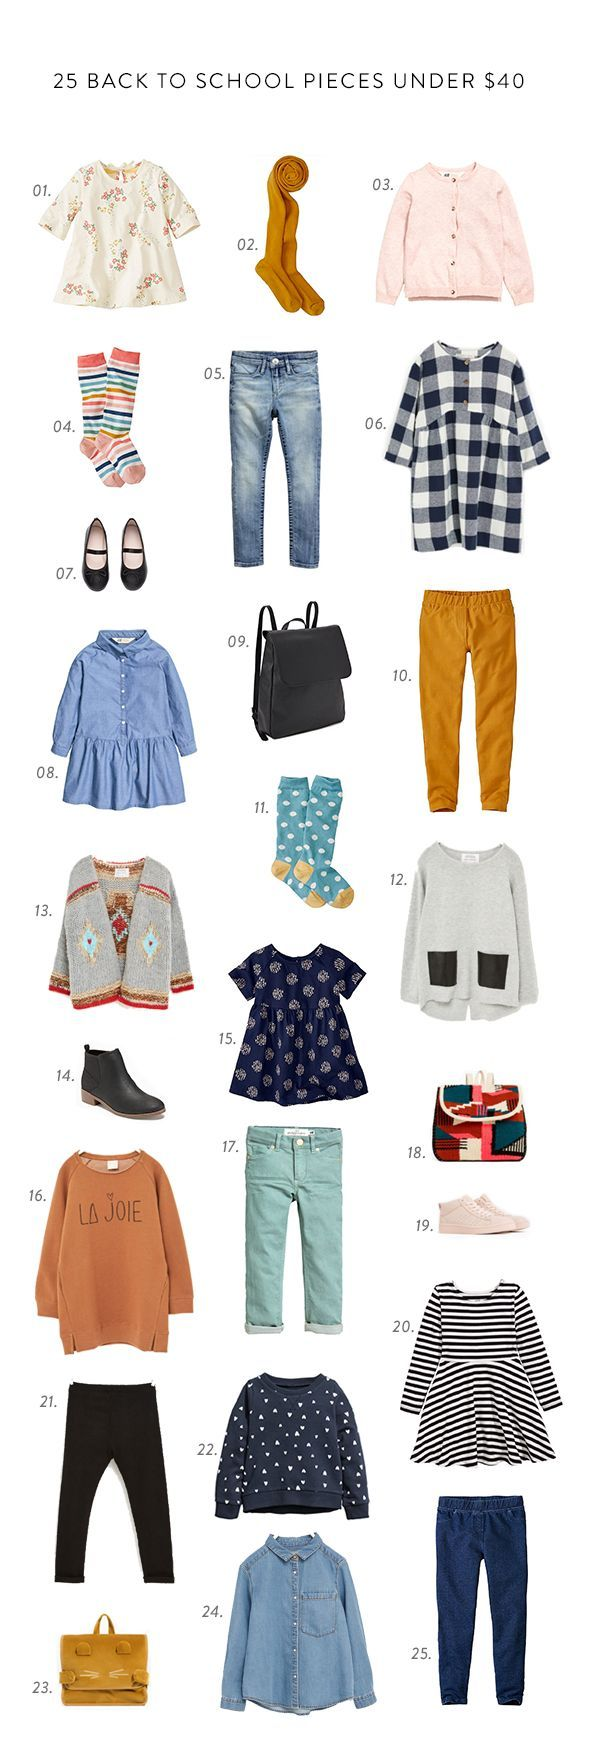 25 back to school pieces for girls under $40